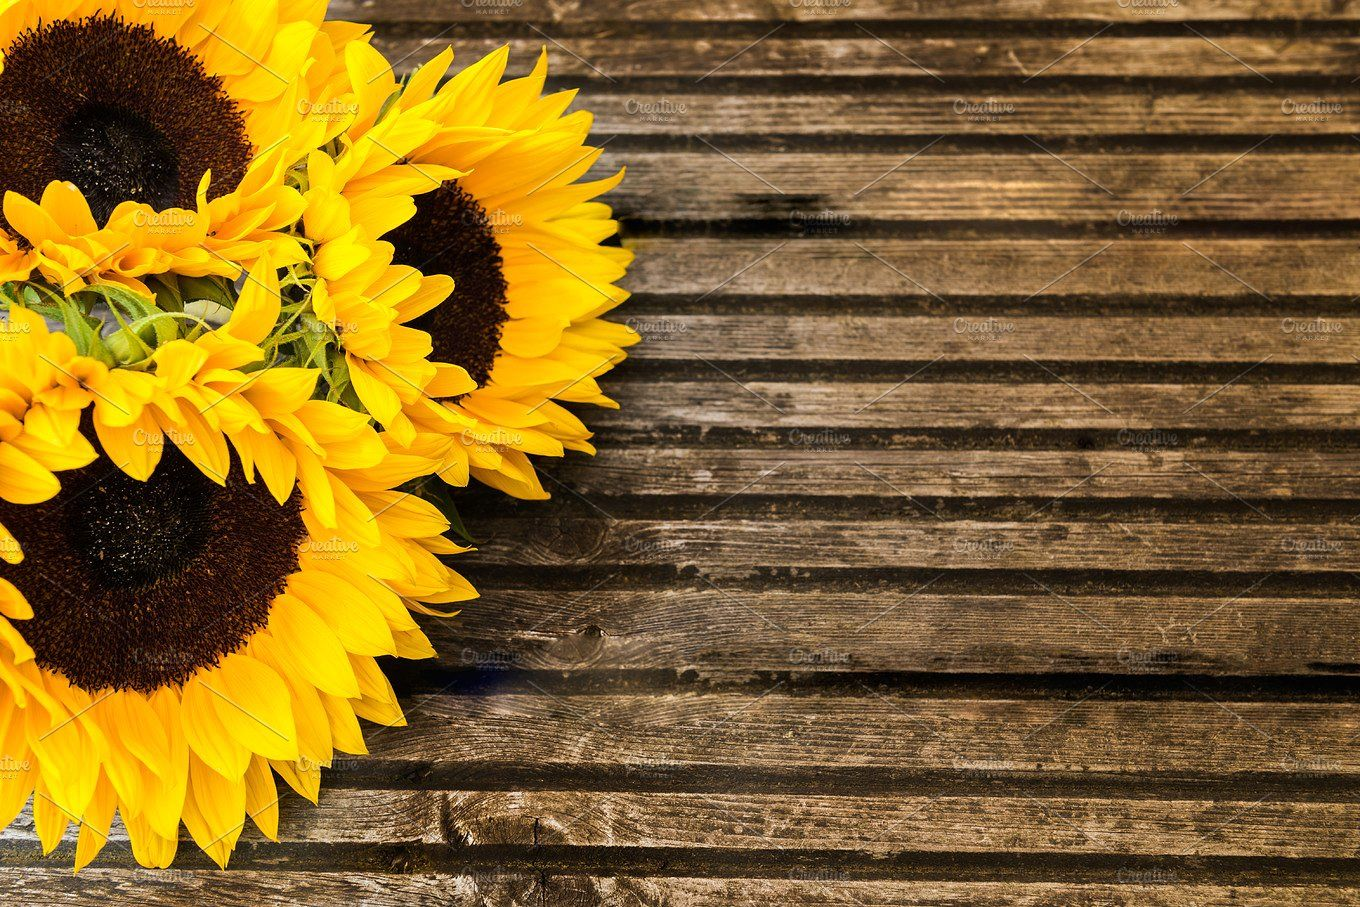 Yellow Sunflower Bouquet on Wooden Rustic Background by